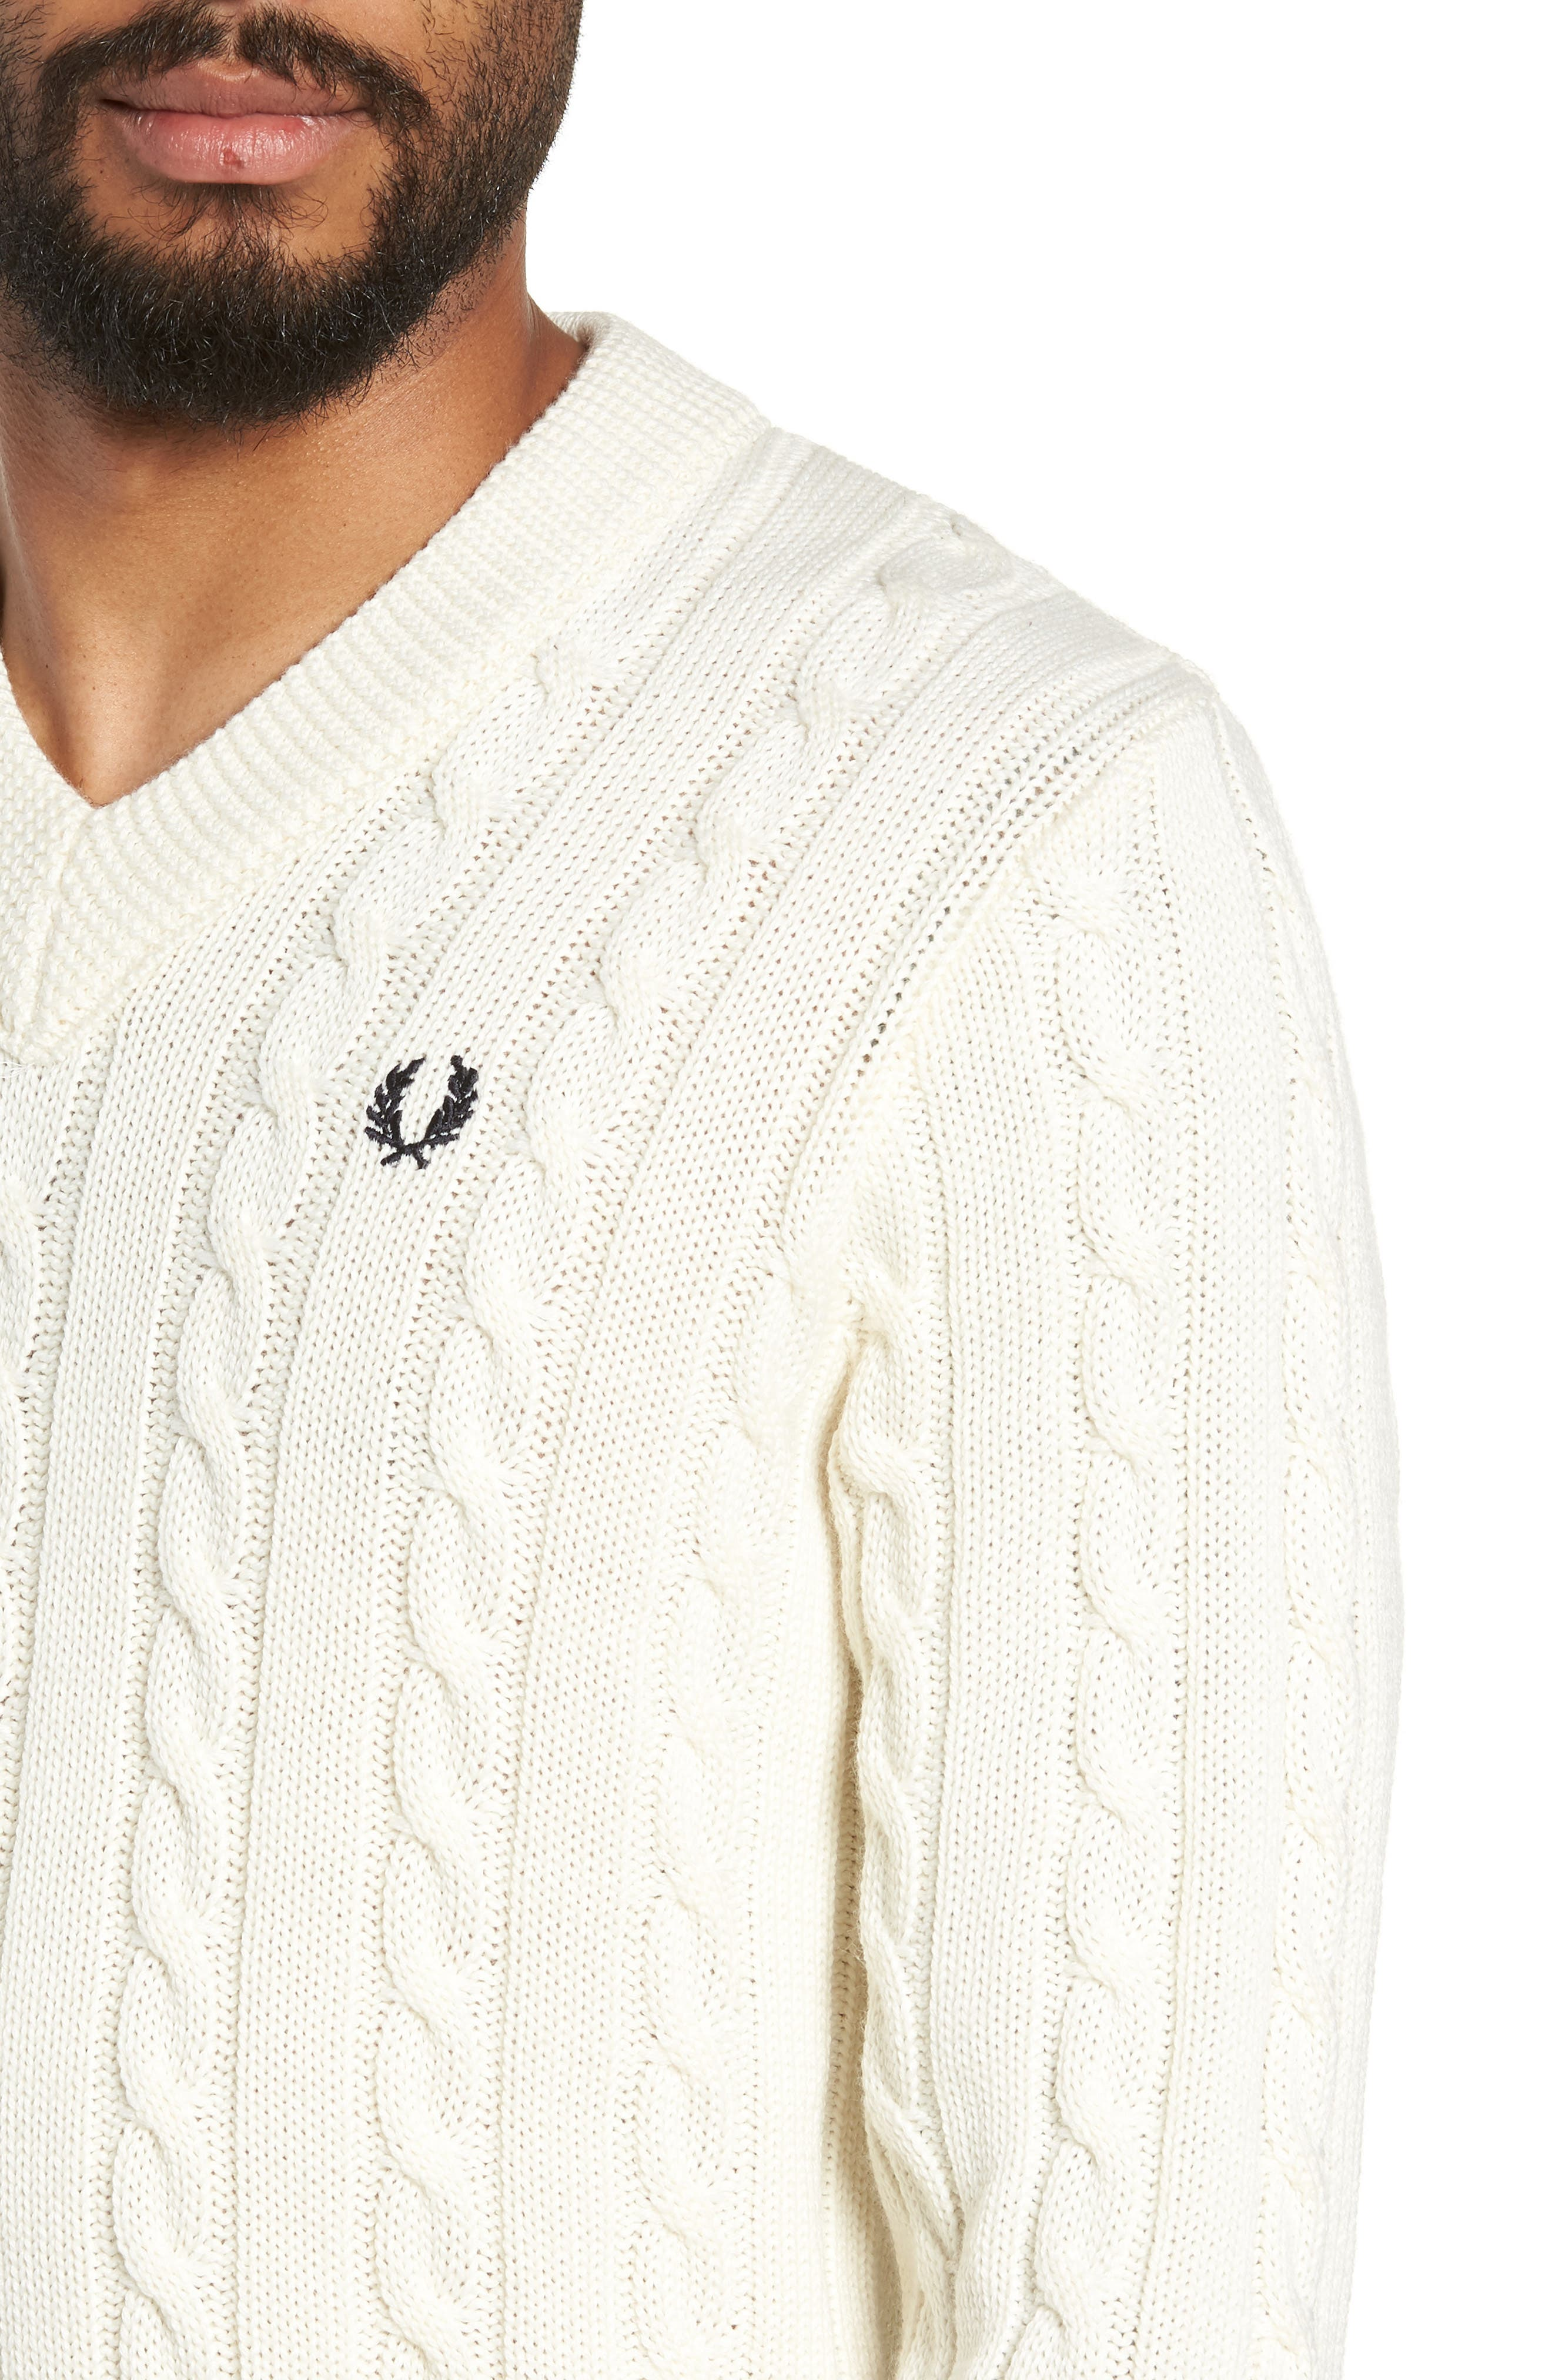 Wool Blend Cable Knit Sweater,                             Alternate thumbnail 4, color,                             ECRU